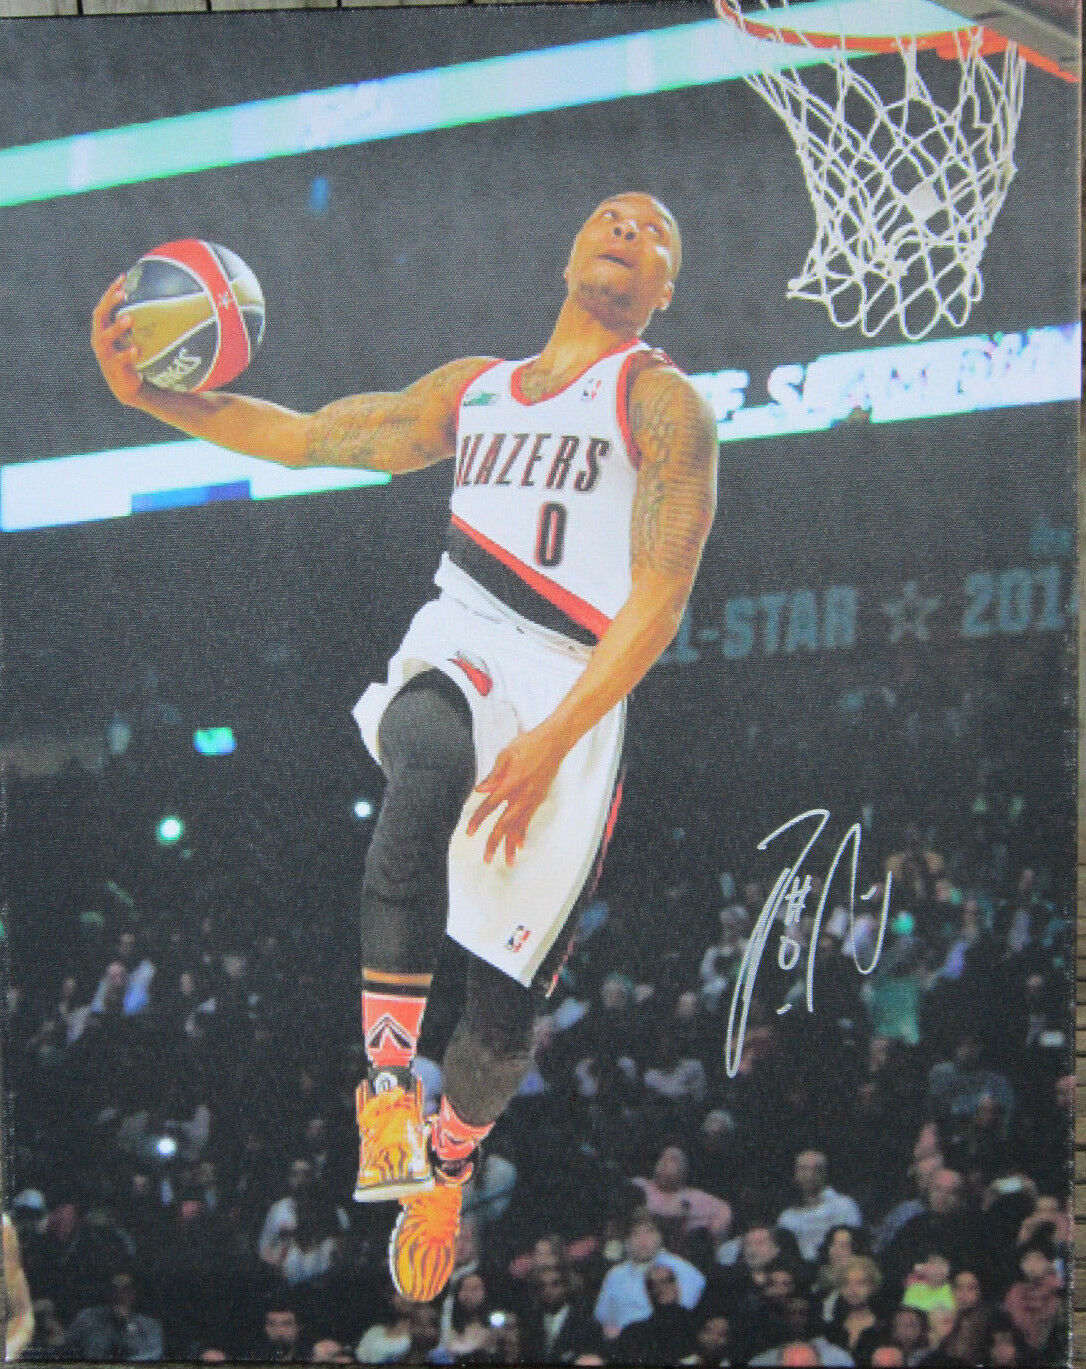 Primary image for Damian Lillard Signed 16x20 Canvas Print Photo - Global Authentics